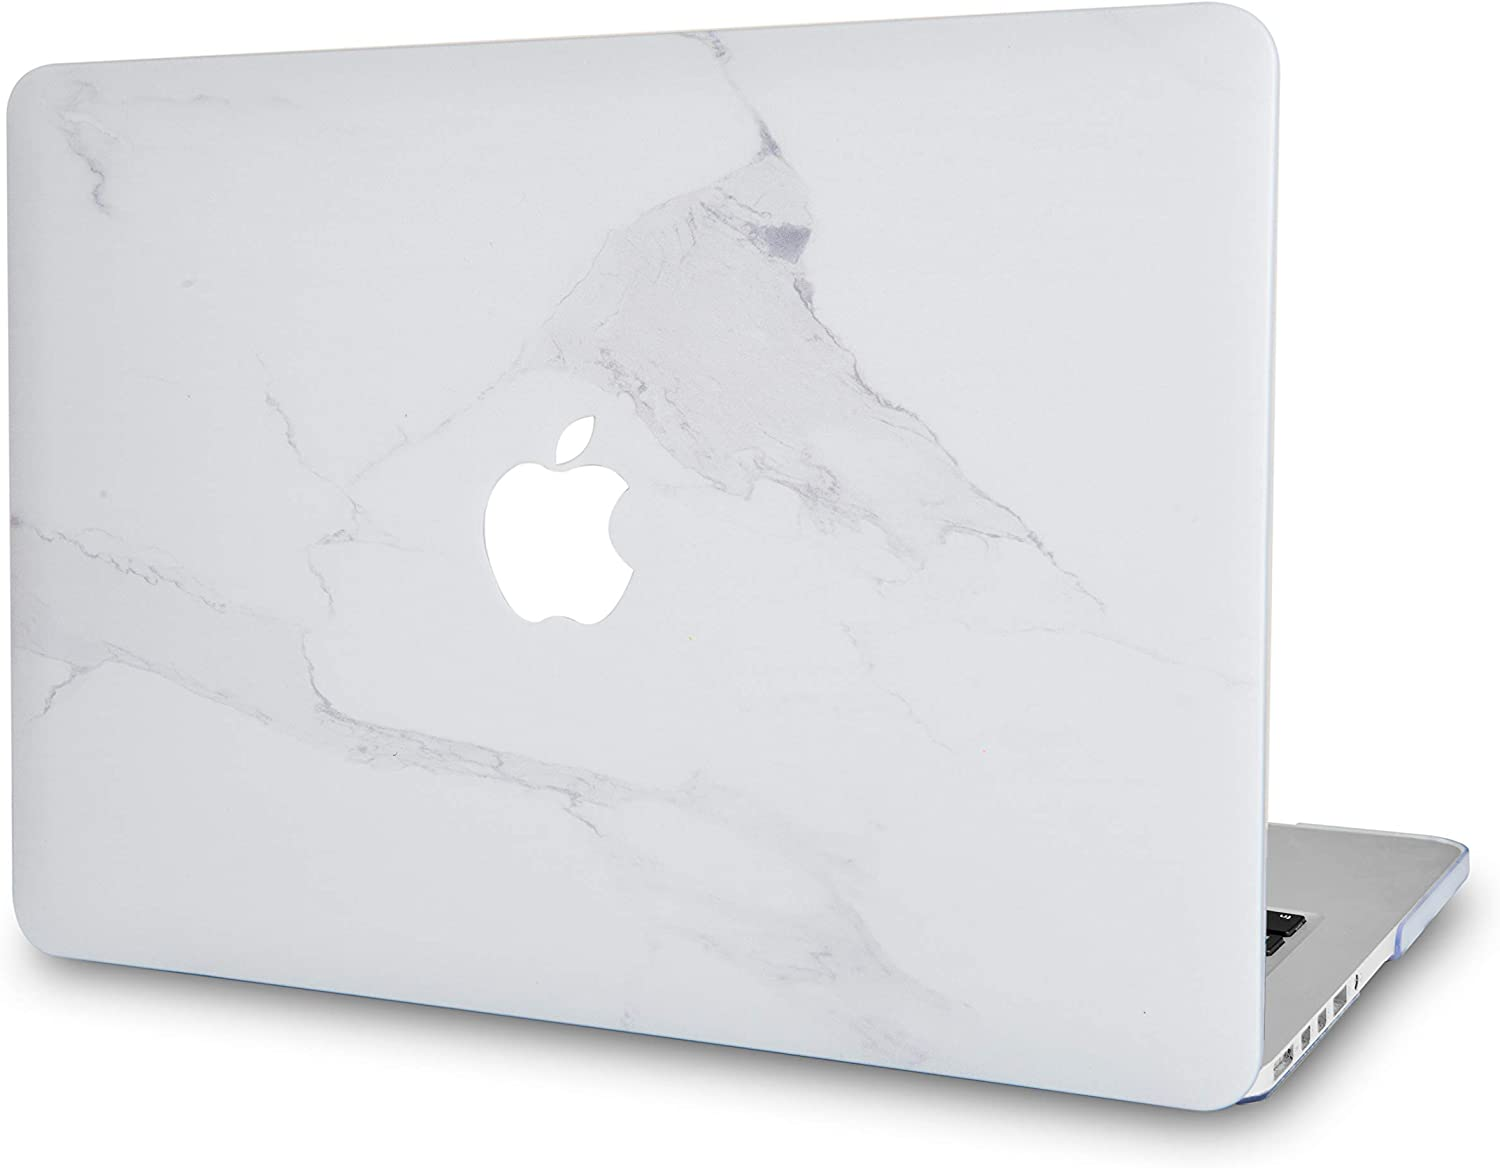 "LuvCase Laptop Case for MacBook Pro 13"" (2020 Release) with Touch Bar A2251/A2289 Rubberized Plastic Hard Shell Cover (Atlantic Marble)"